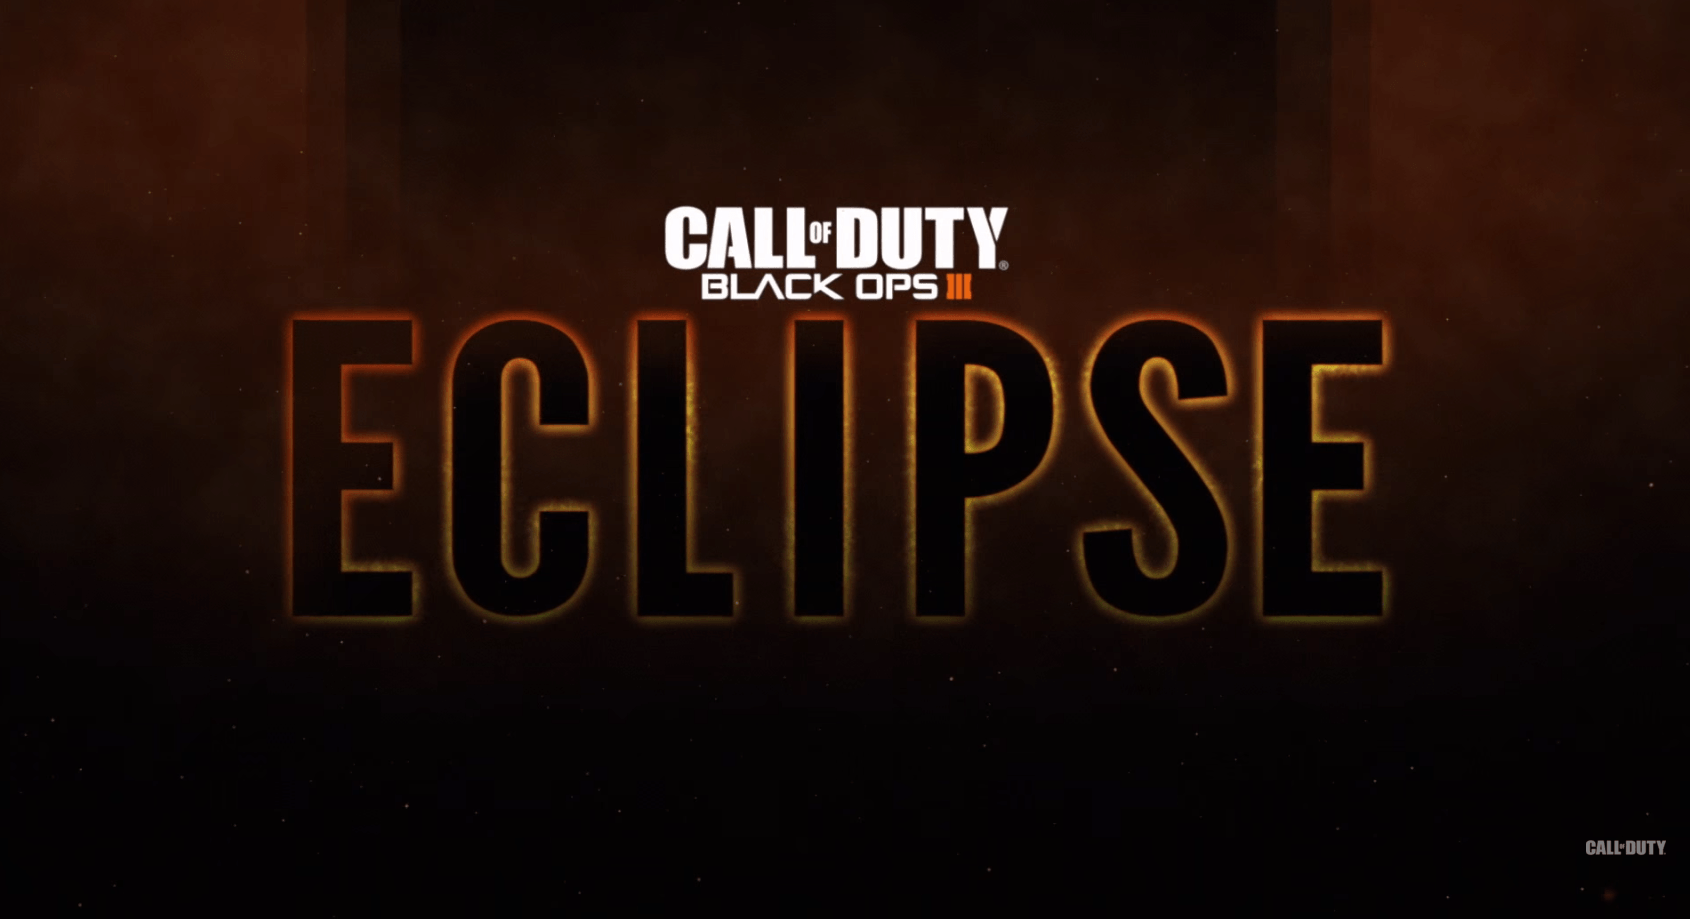 Call Of Duty Black Ops 3 Eclipse Dlc Pack 2 Available Now On